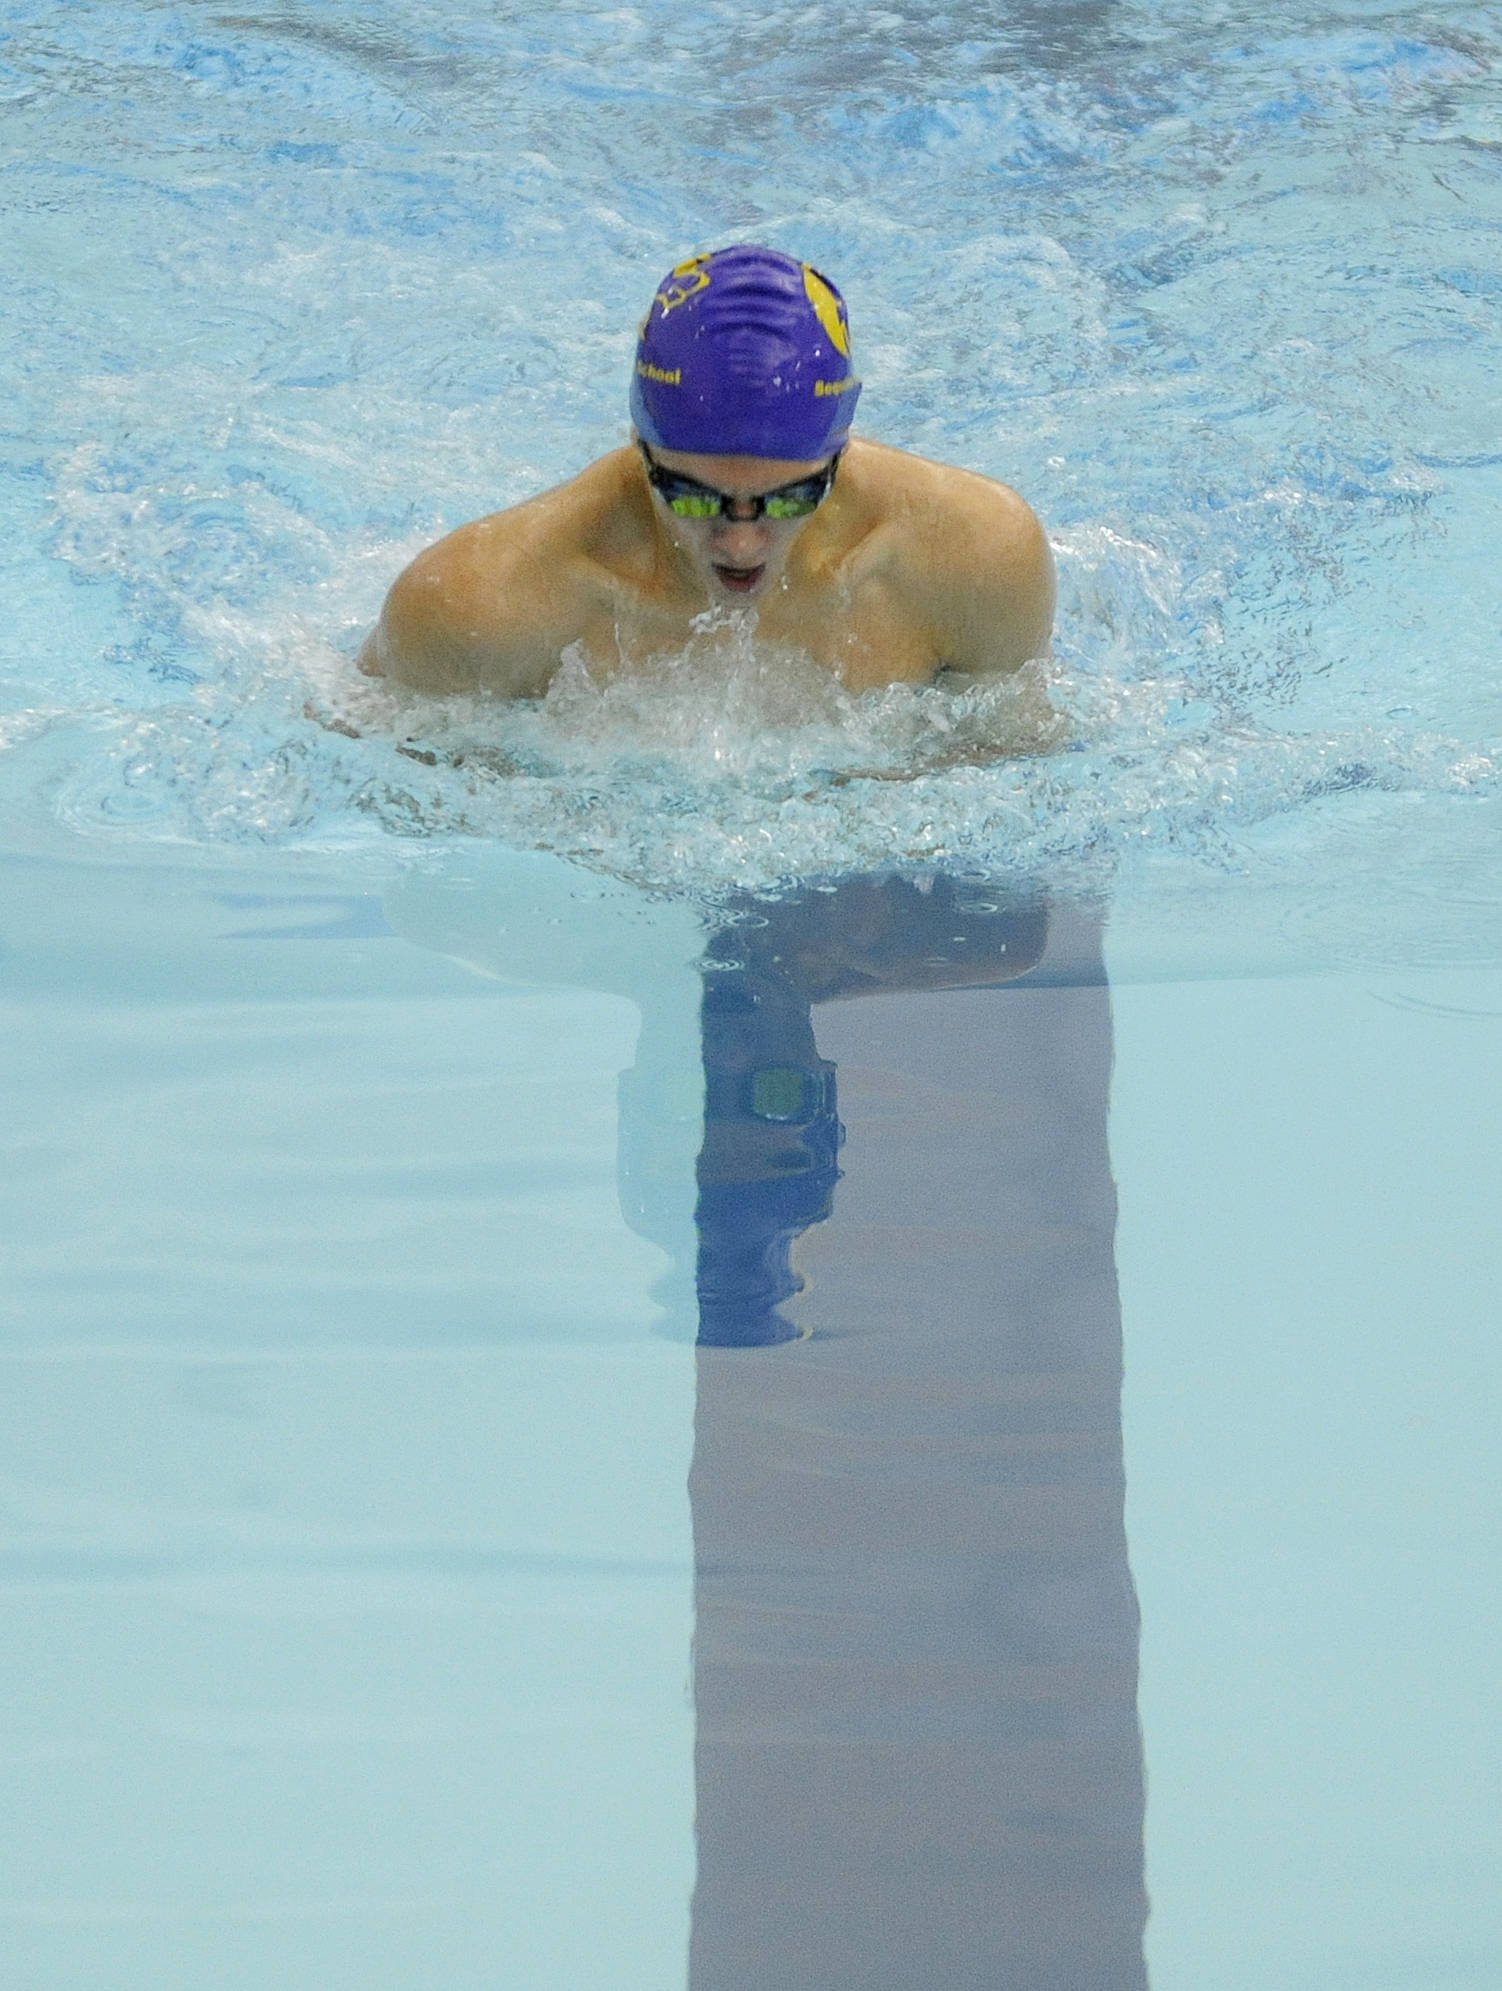 Sequim William Payne swims the 100 breaststroke in an Olympic League meet against Bremerton on Dec. 14. Sequim Gazette photo by Michael Dashiell